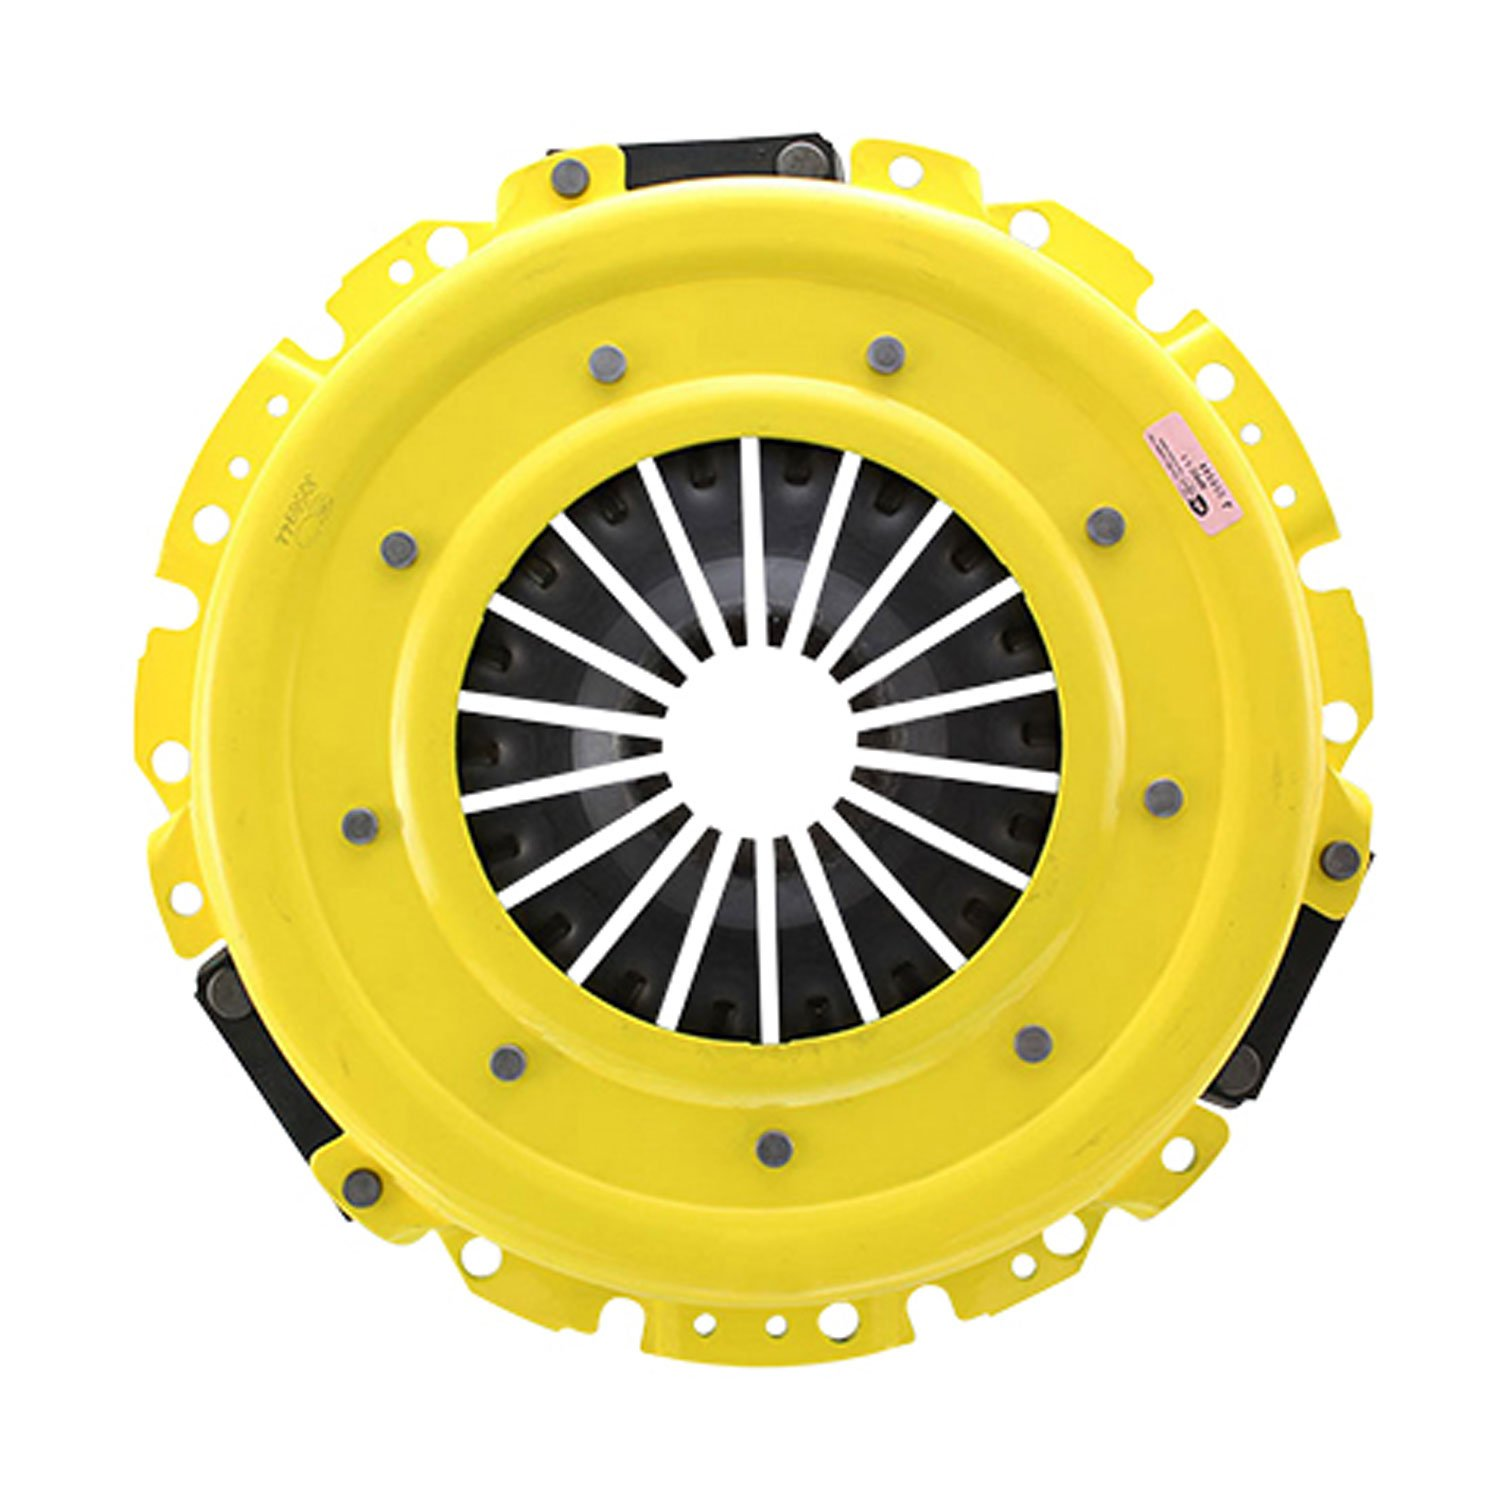 ACT Advanced Clutch Technology T011 Heavy Duty Performance Pressure Plate, For Select Toyota Vehicles by ACT